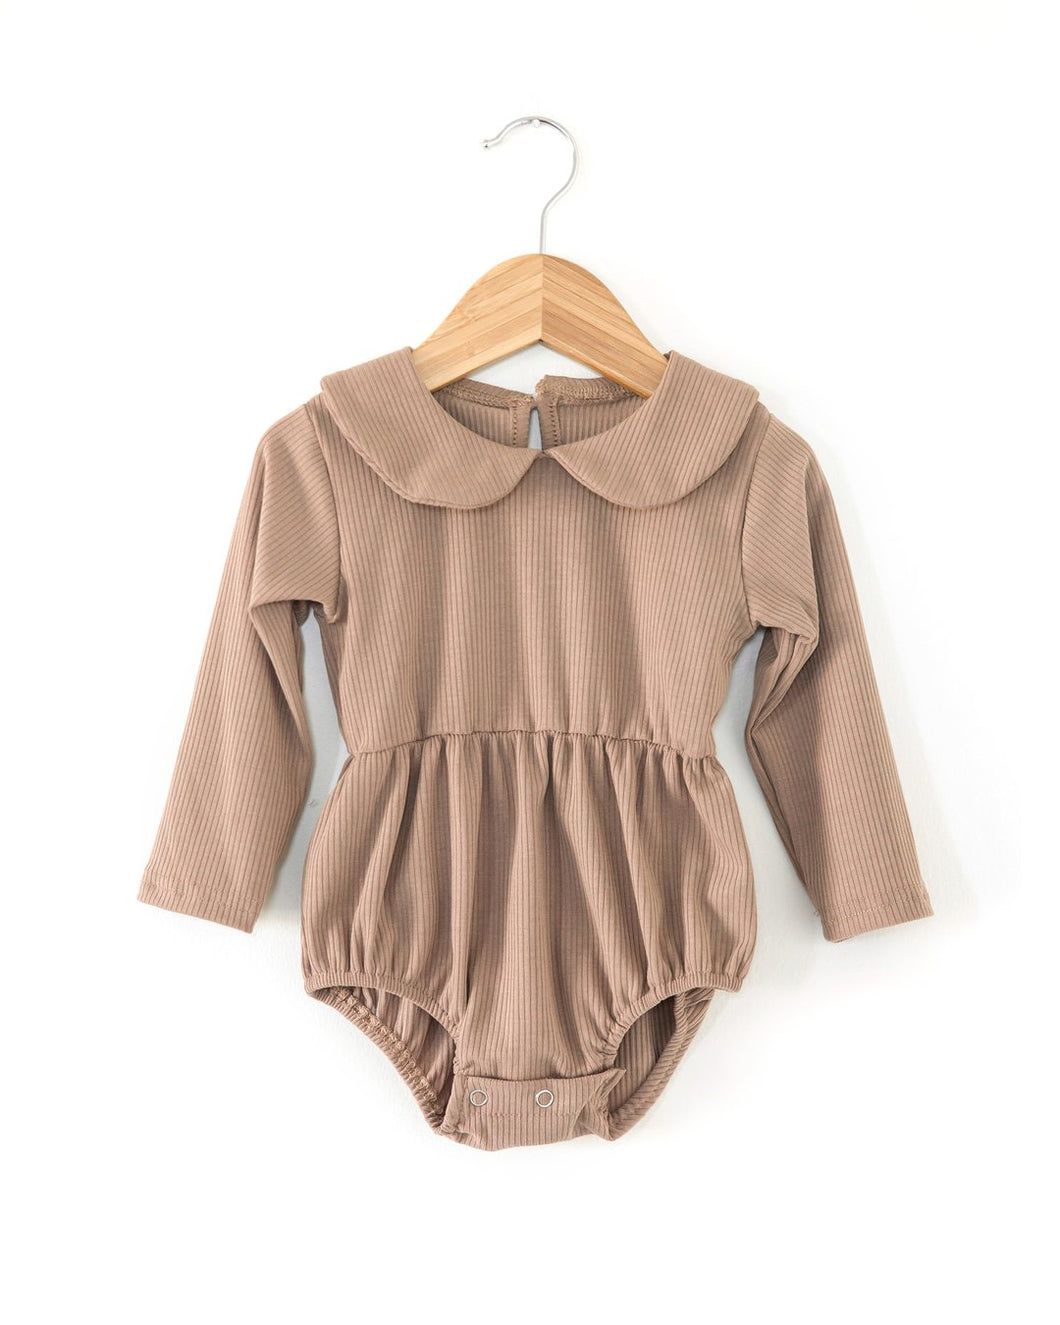 Janey Ribbed Romper - Camel - Little Boo Store